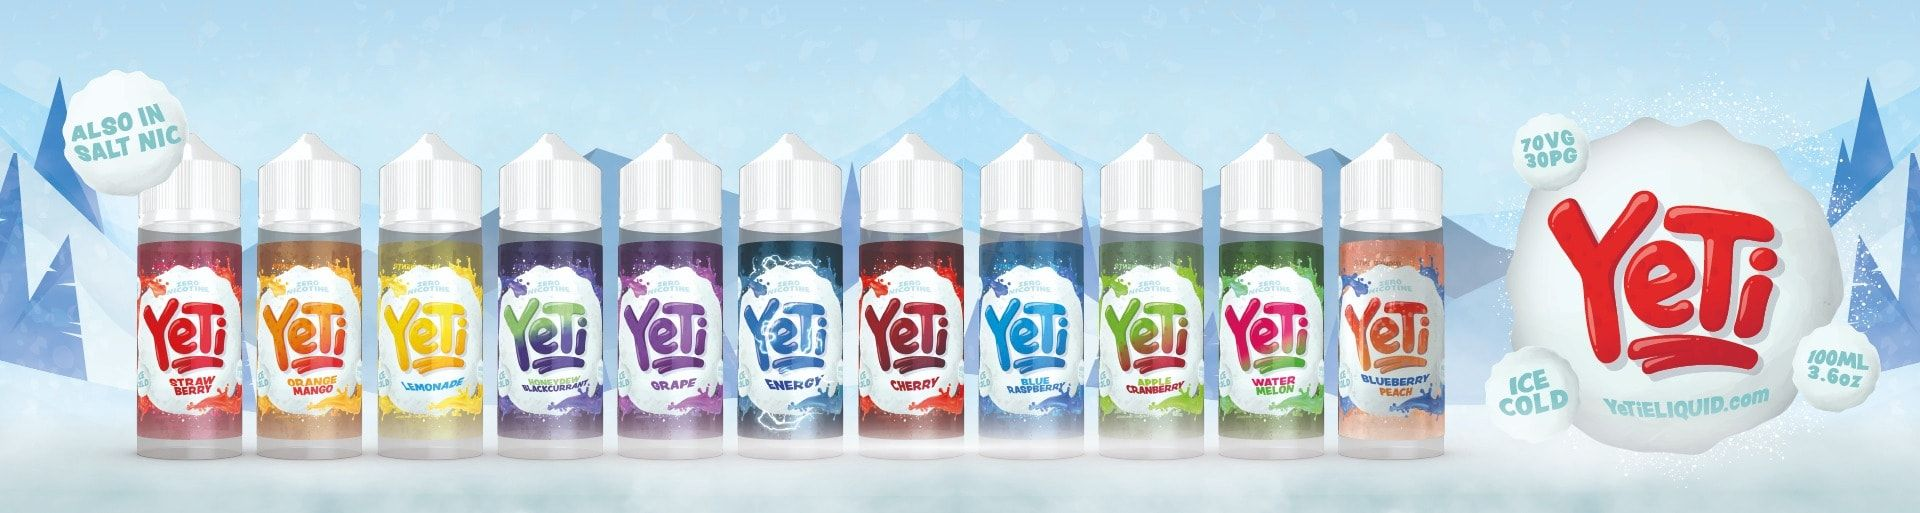 Yeti eLiquid Banner UK